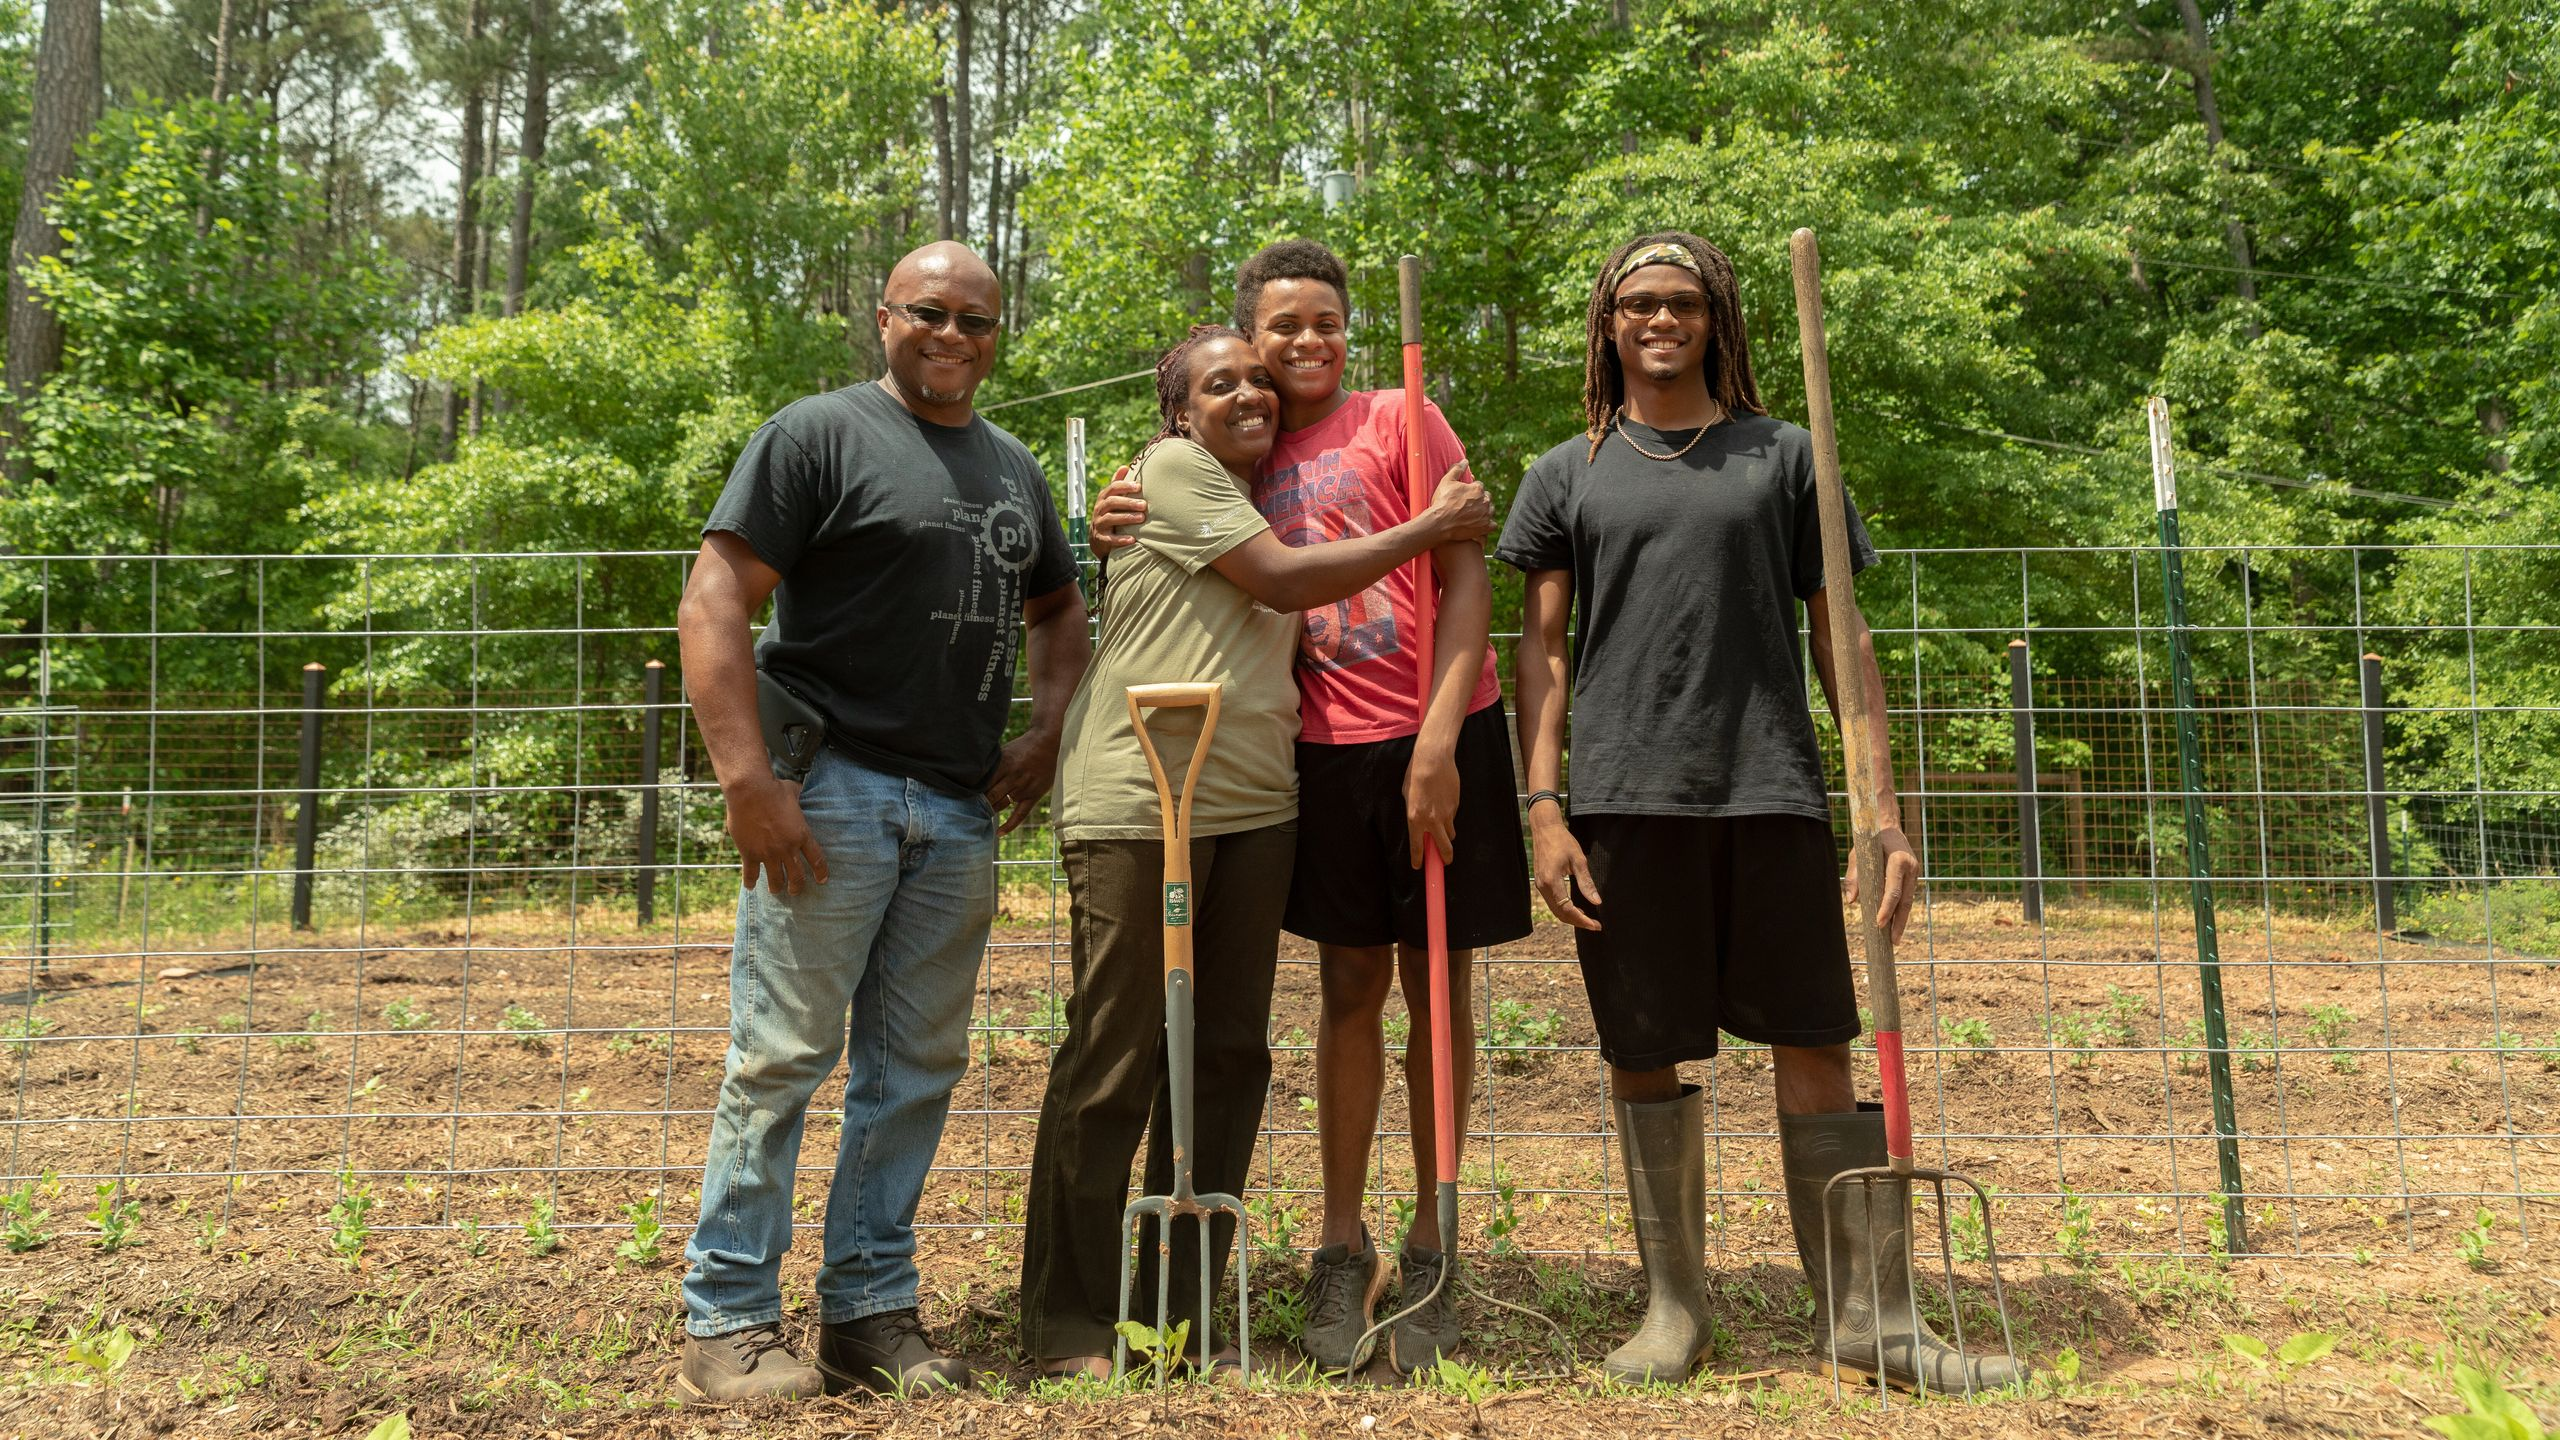 (L-R) Warren Cameron (husband), Keisha, and children Zachary and Abraham. The family owns High Hog Farm in Grayson, Georgia.